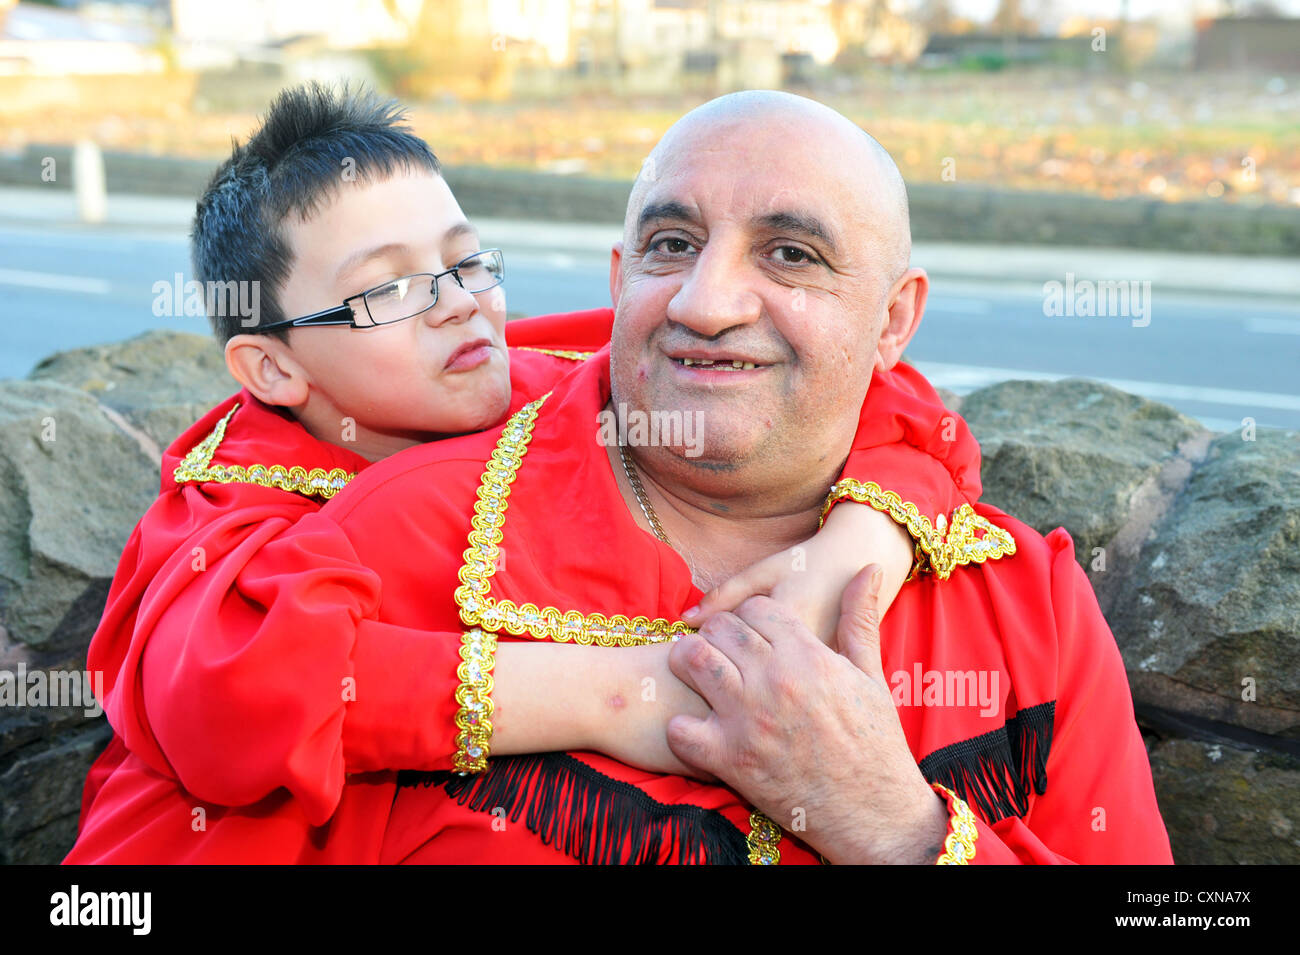 Polish Roma father and son in traditional clothing, Bradford UK - Stock Image